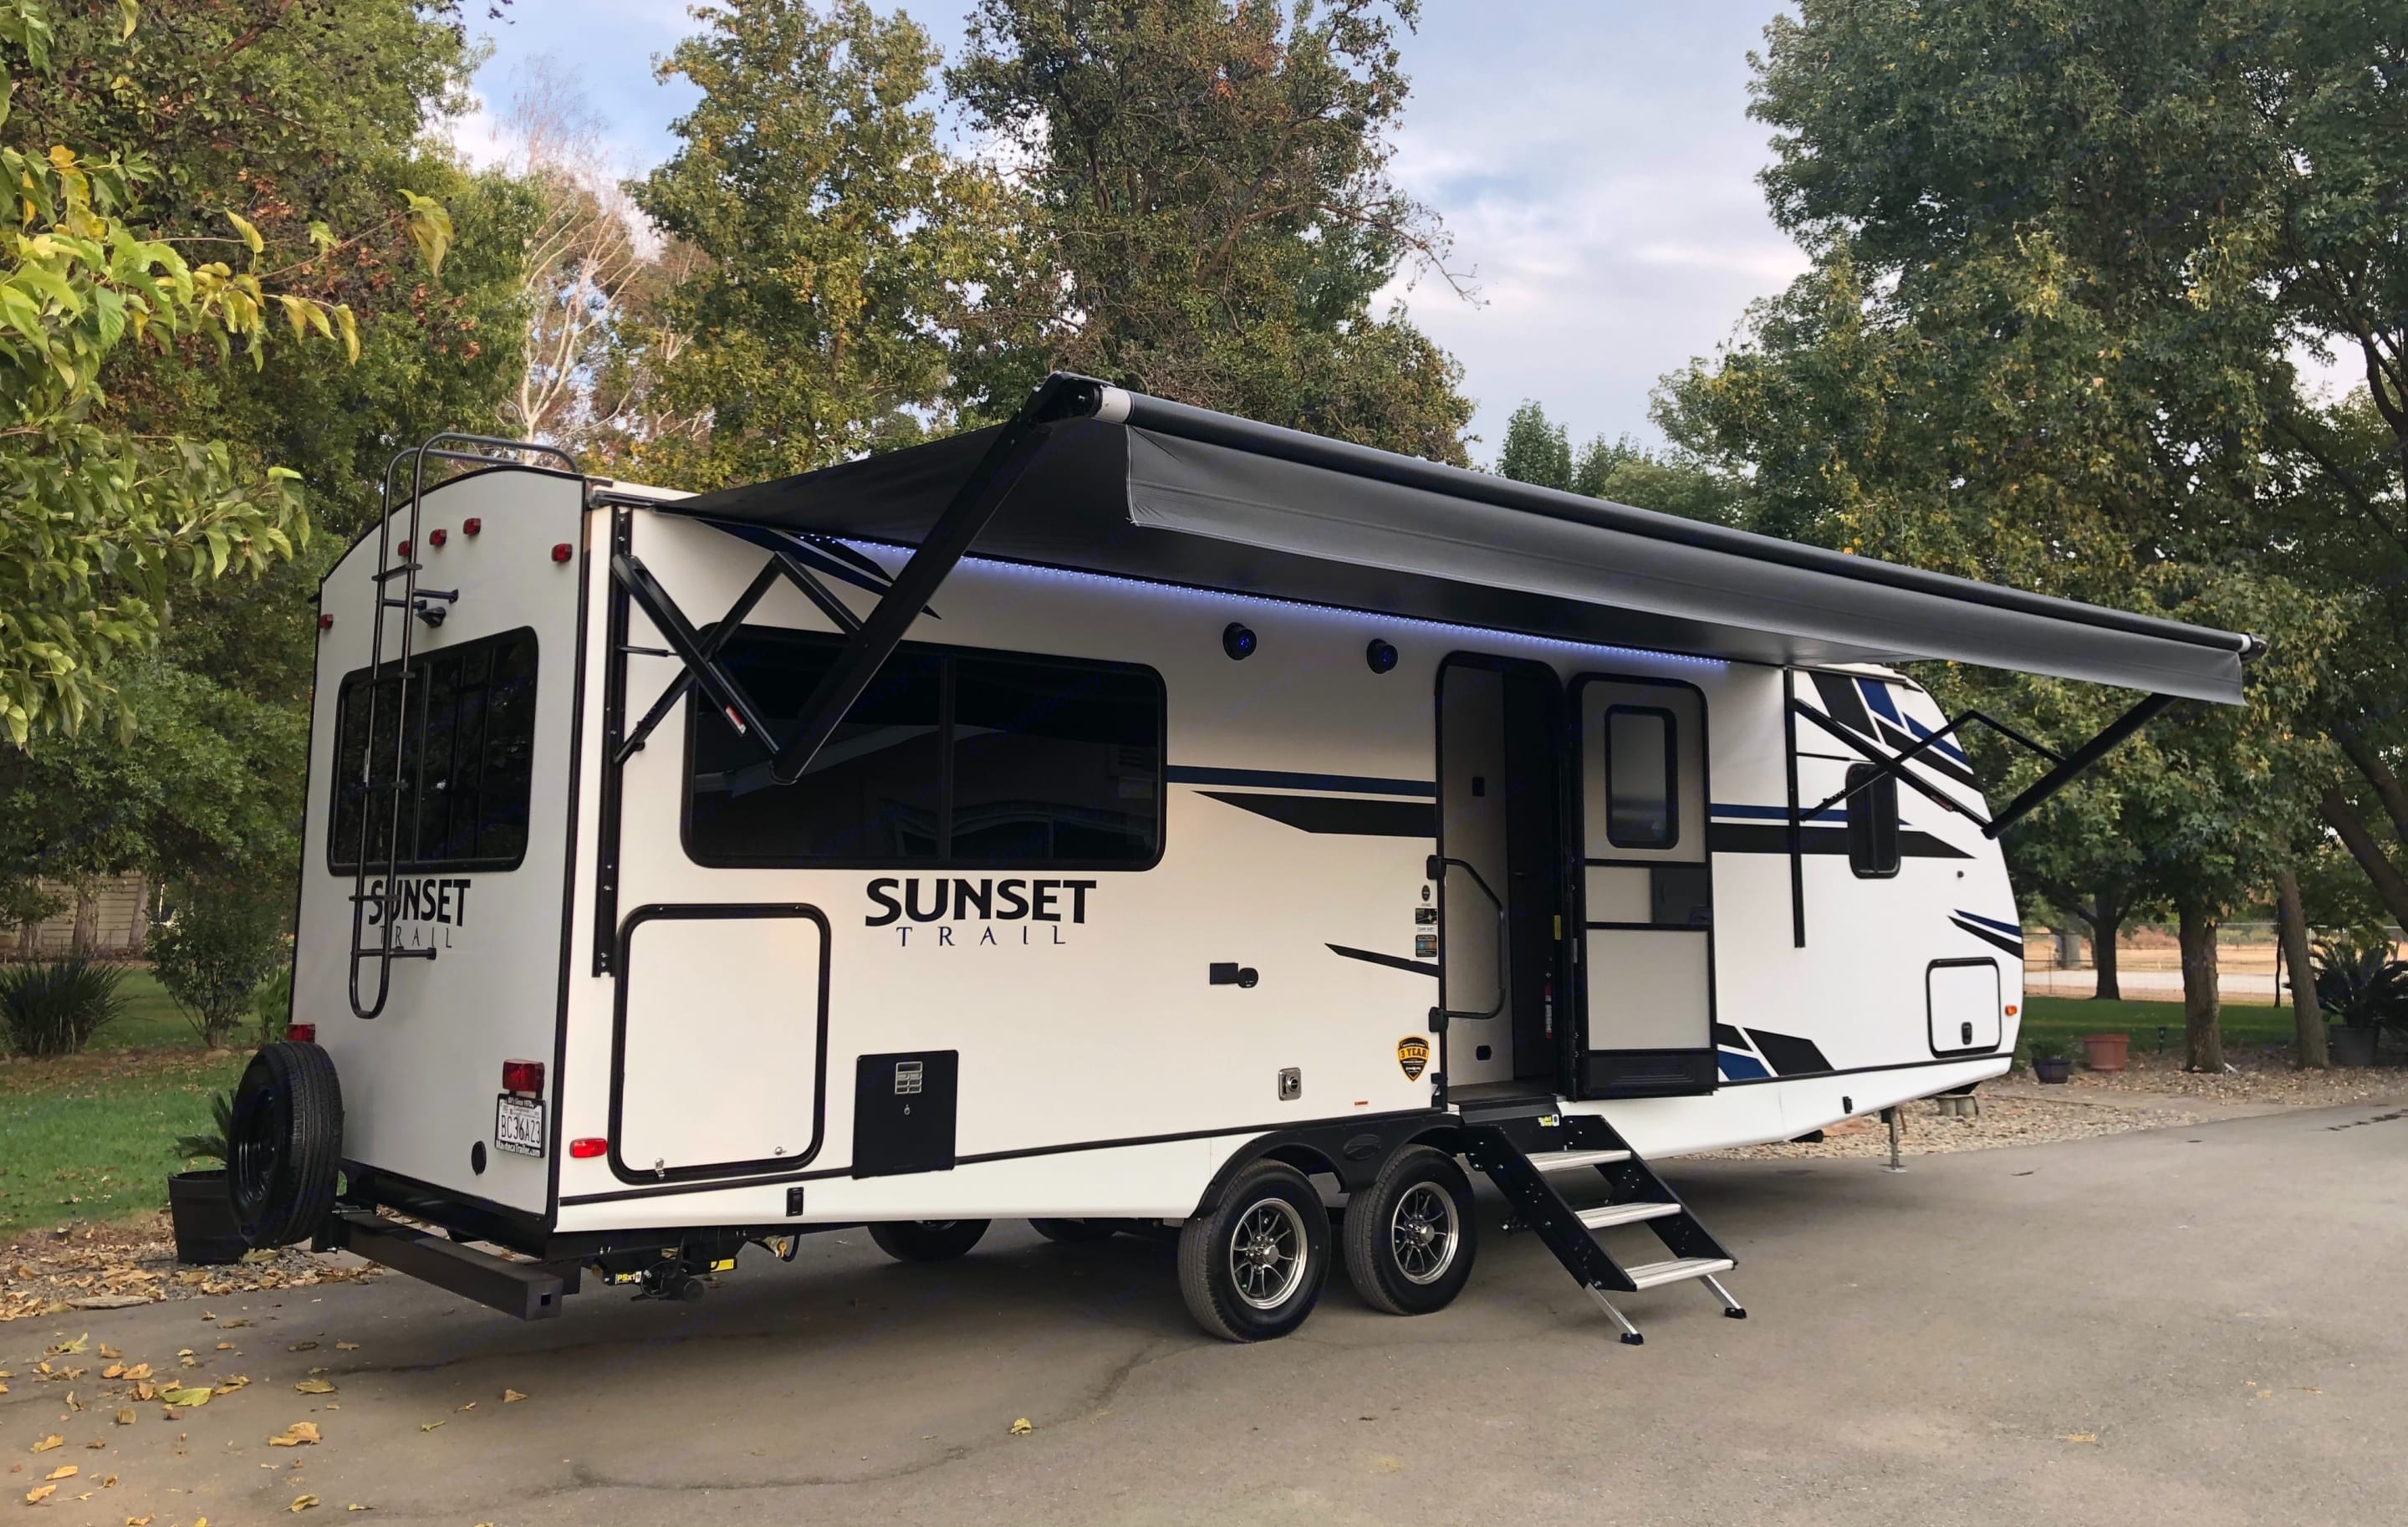 Passenger side with awning opened. Crossroads Sunset Trail Super Lite 2021